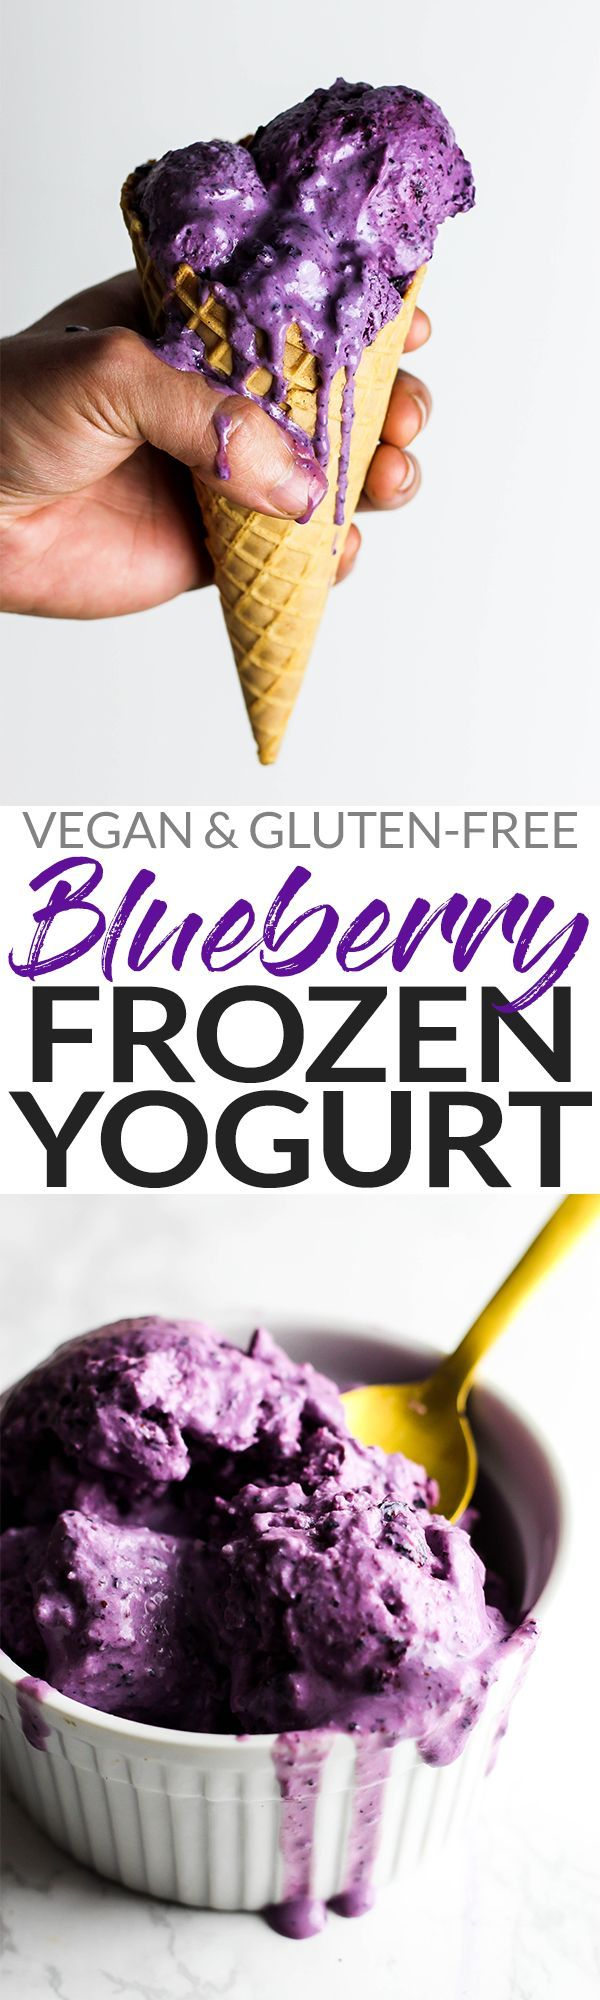 Cool off with a scoop of this refreshing Blueberry Vegan Frozen Yogurt! It's the perfect fruity dessert, plus you could even enjoy it for breakfast.